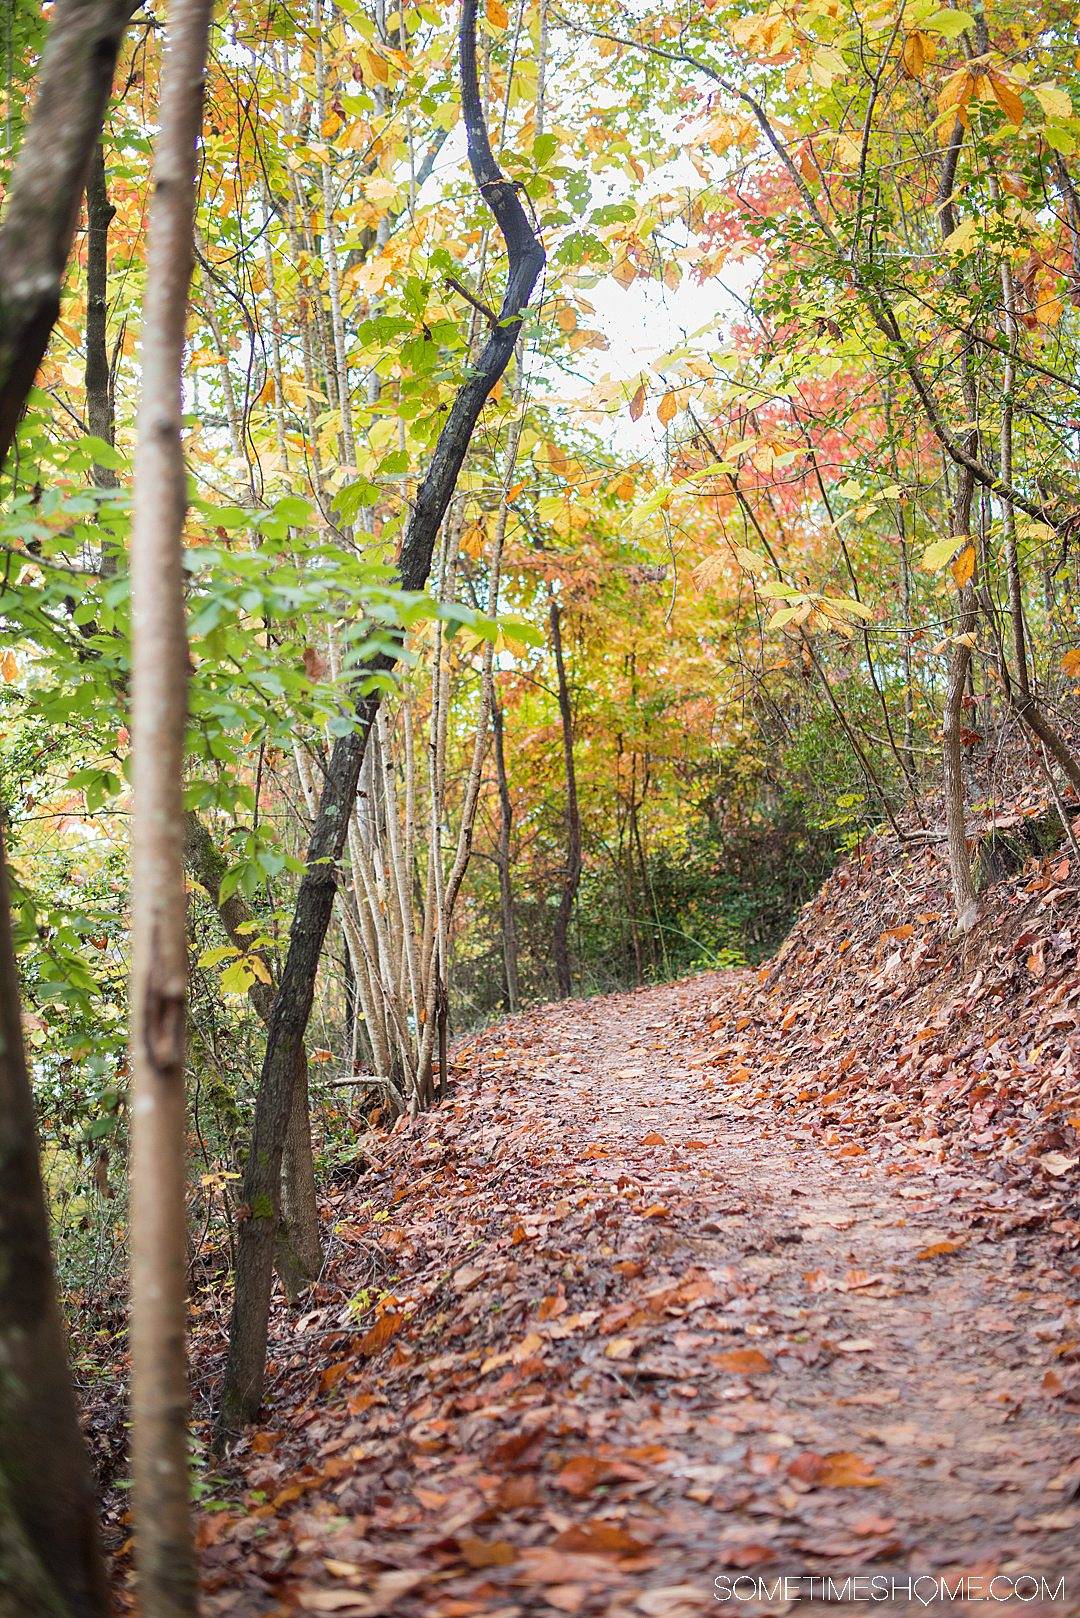 One of the best things to do in the North Carolina mountains is hike! And we have your guide to the best hiking near Morganton, NC in Burke County near the Blue Ridge Mountains. Fall colors were at their peak in the Appalachian Mountains range at the time we took this beautiful photography on Fonta Flora trail. #sometimeshome #besthikingnorthcarolina #autumncolors #peakfallleaves #blueridgemountains